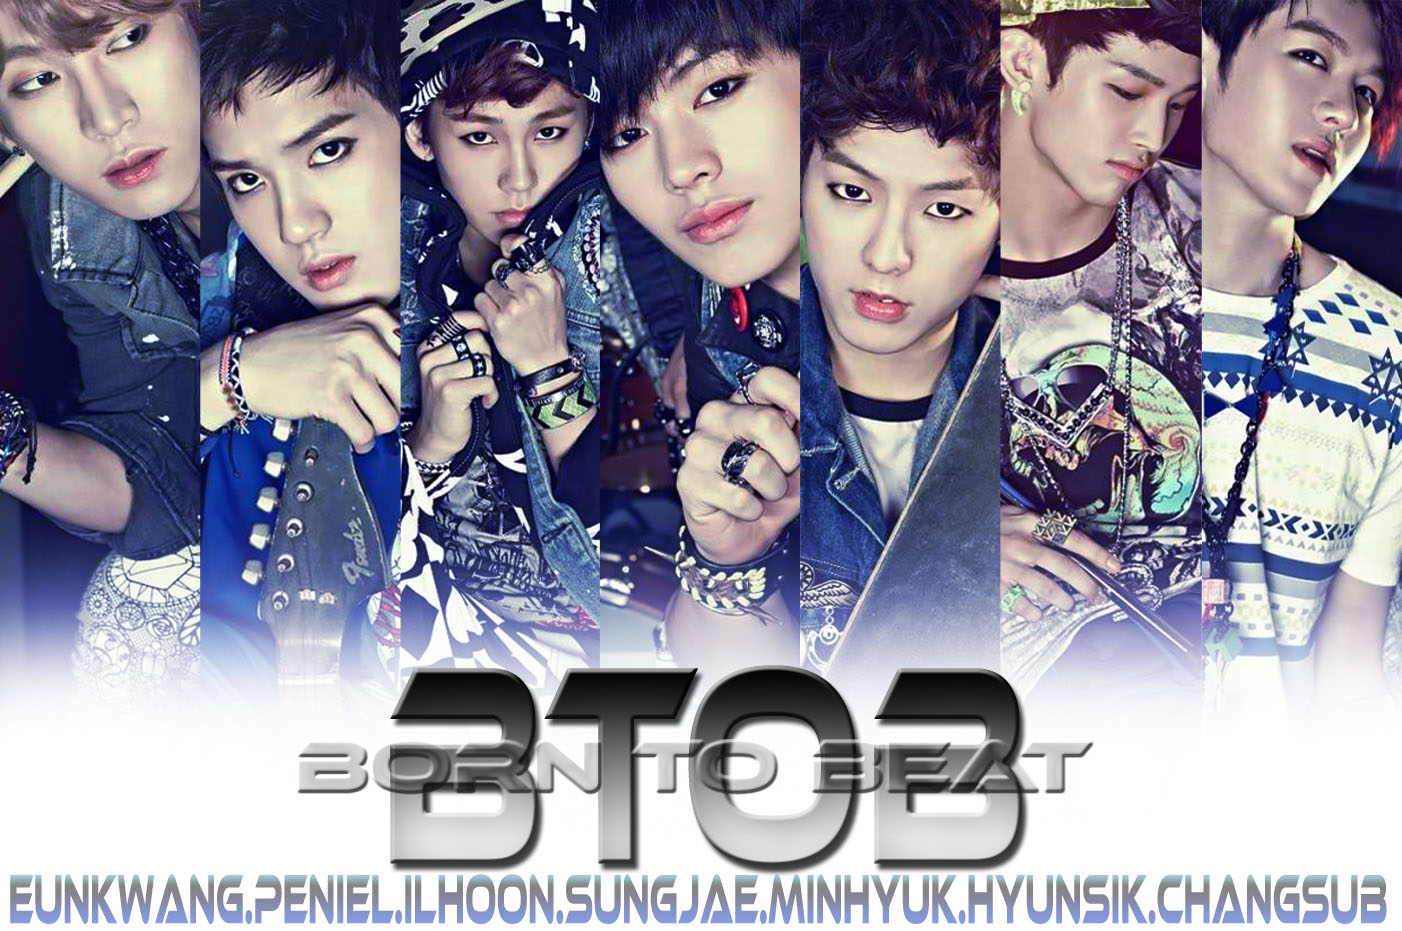 btob born to beat images icons wallpapers and photos